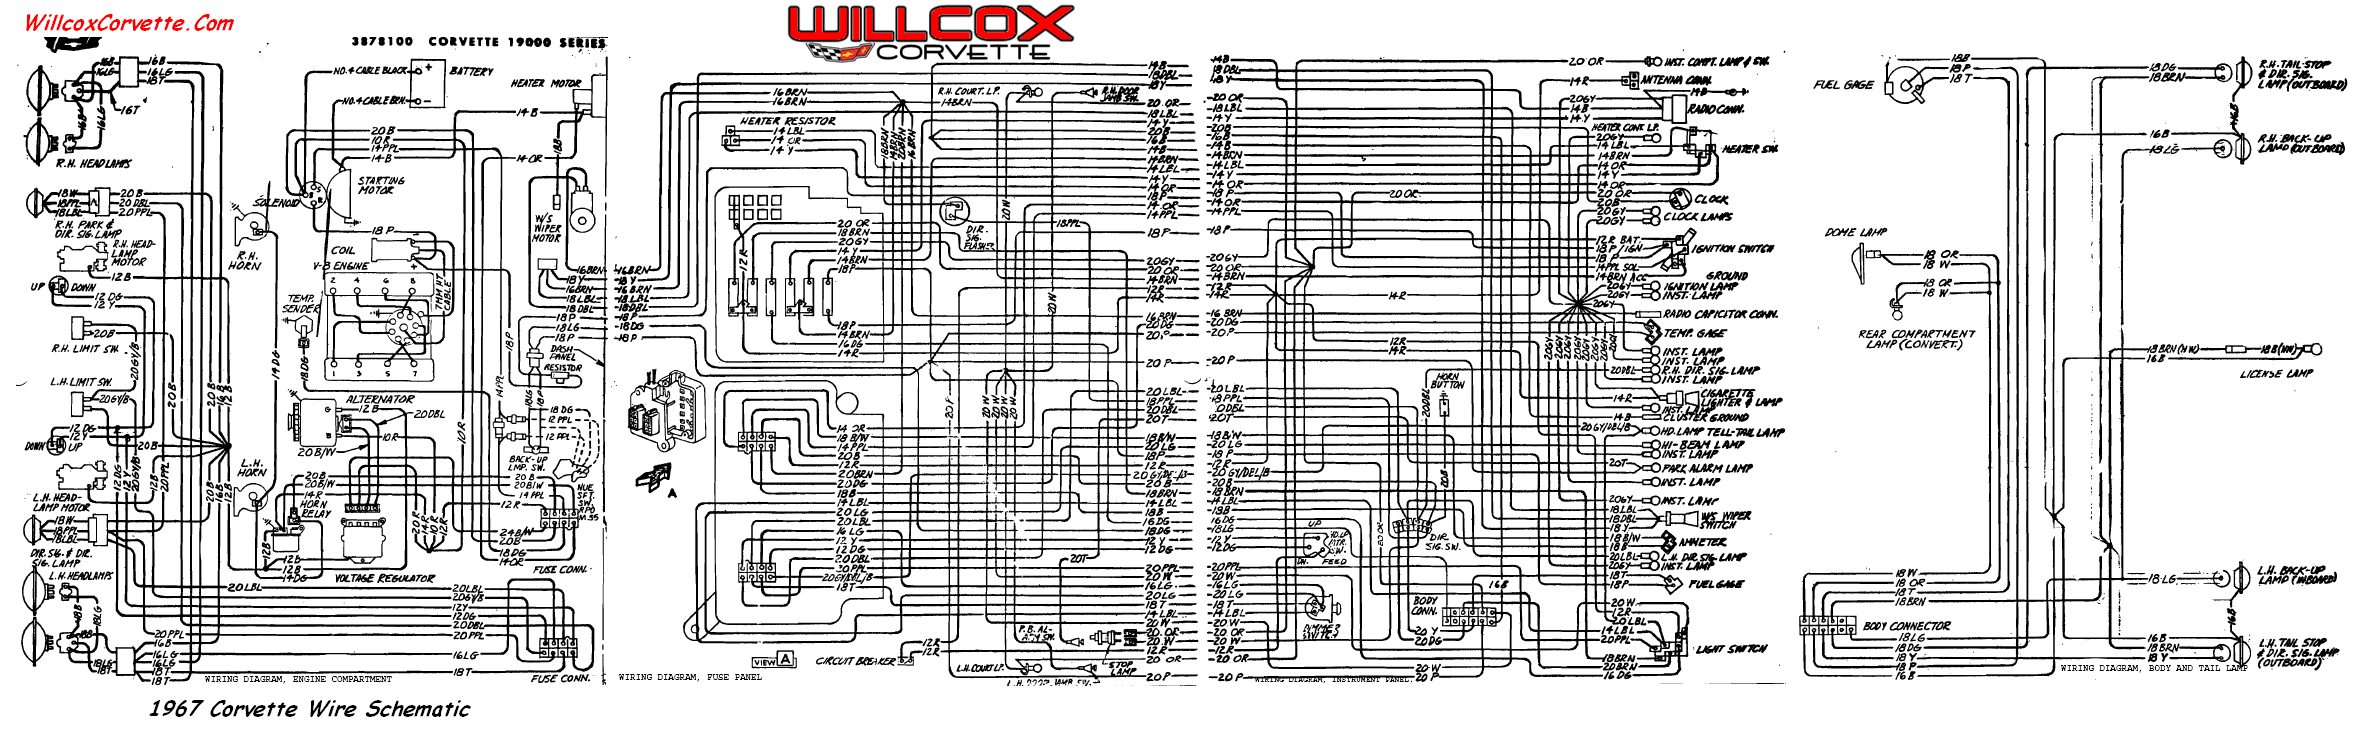 67 wire schematic for tracing wires 1972 corvette dash wiring diagram we davidforlife de \u2022